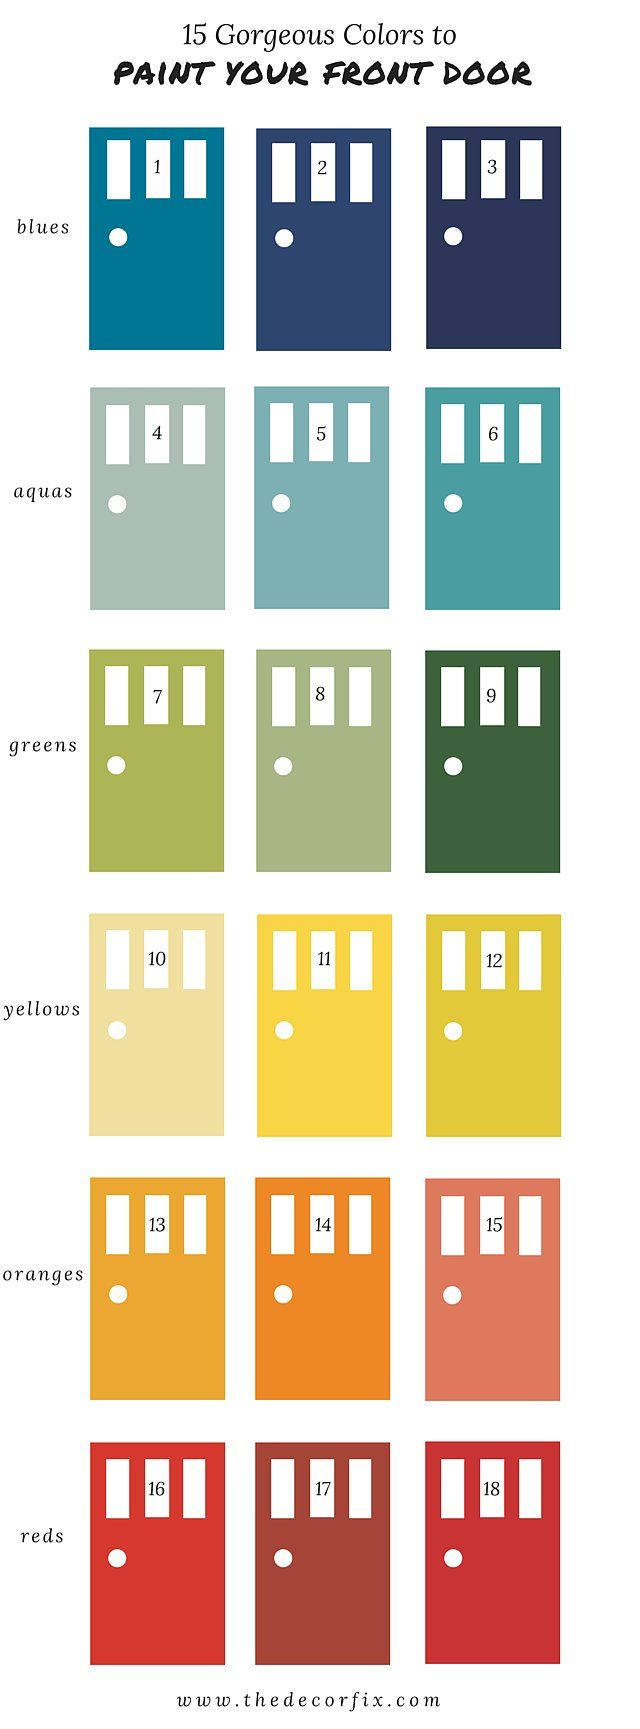 The Best Paint Colors to Use on Your Front Door | POPSUGAR Home